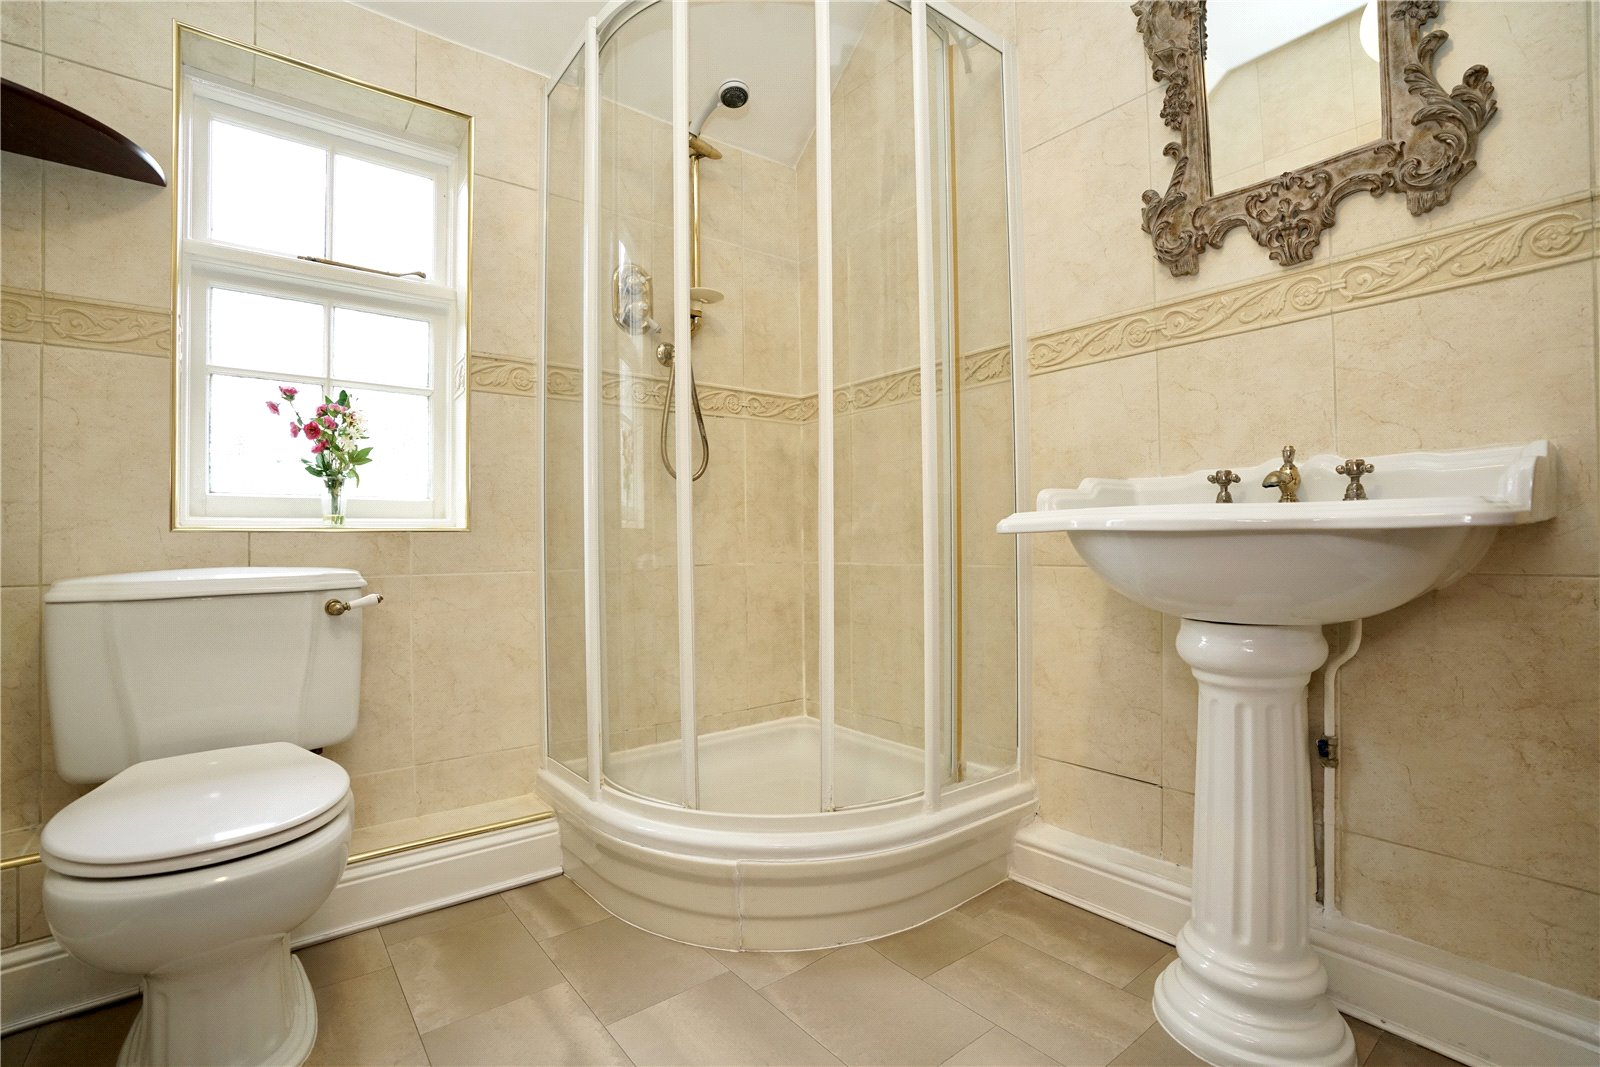 4 bed house for sale in Great Staughton  - Property Image 14